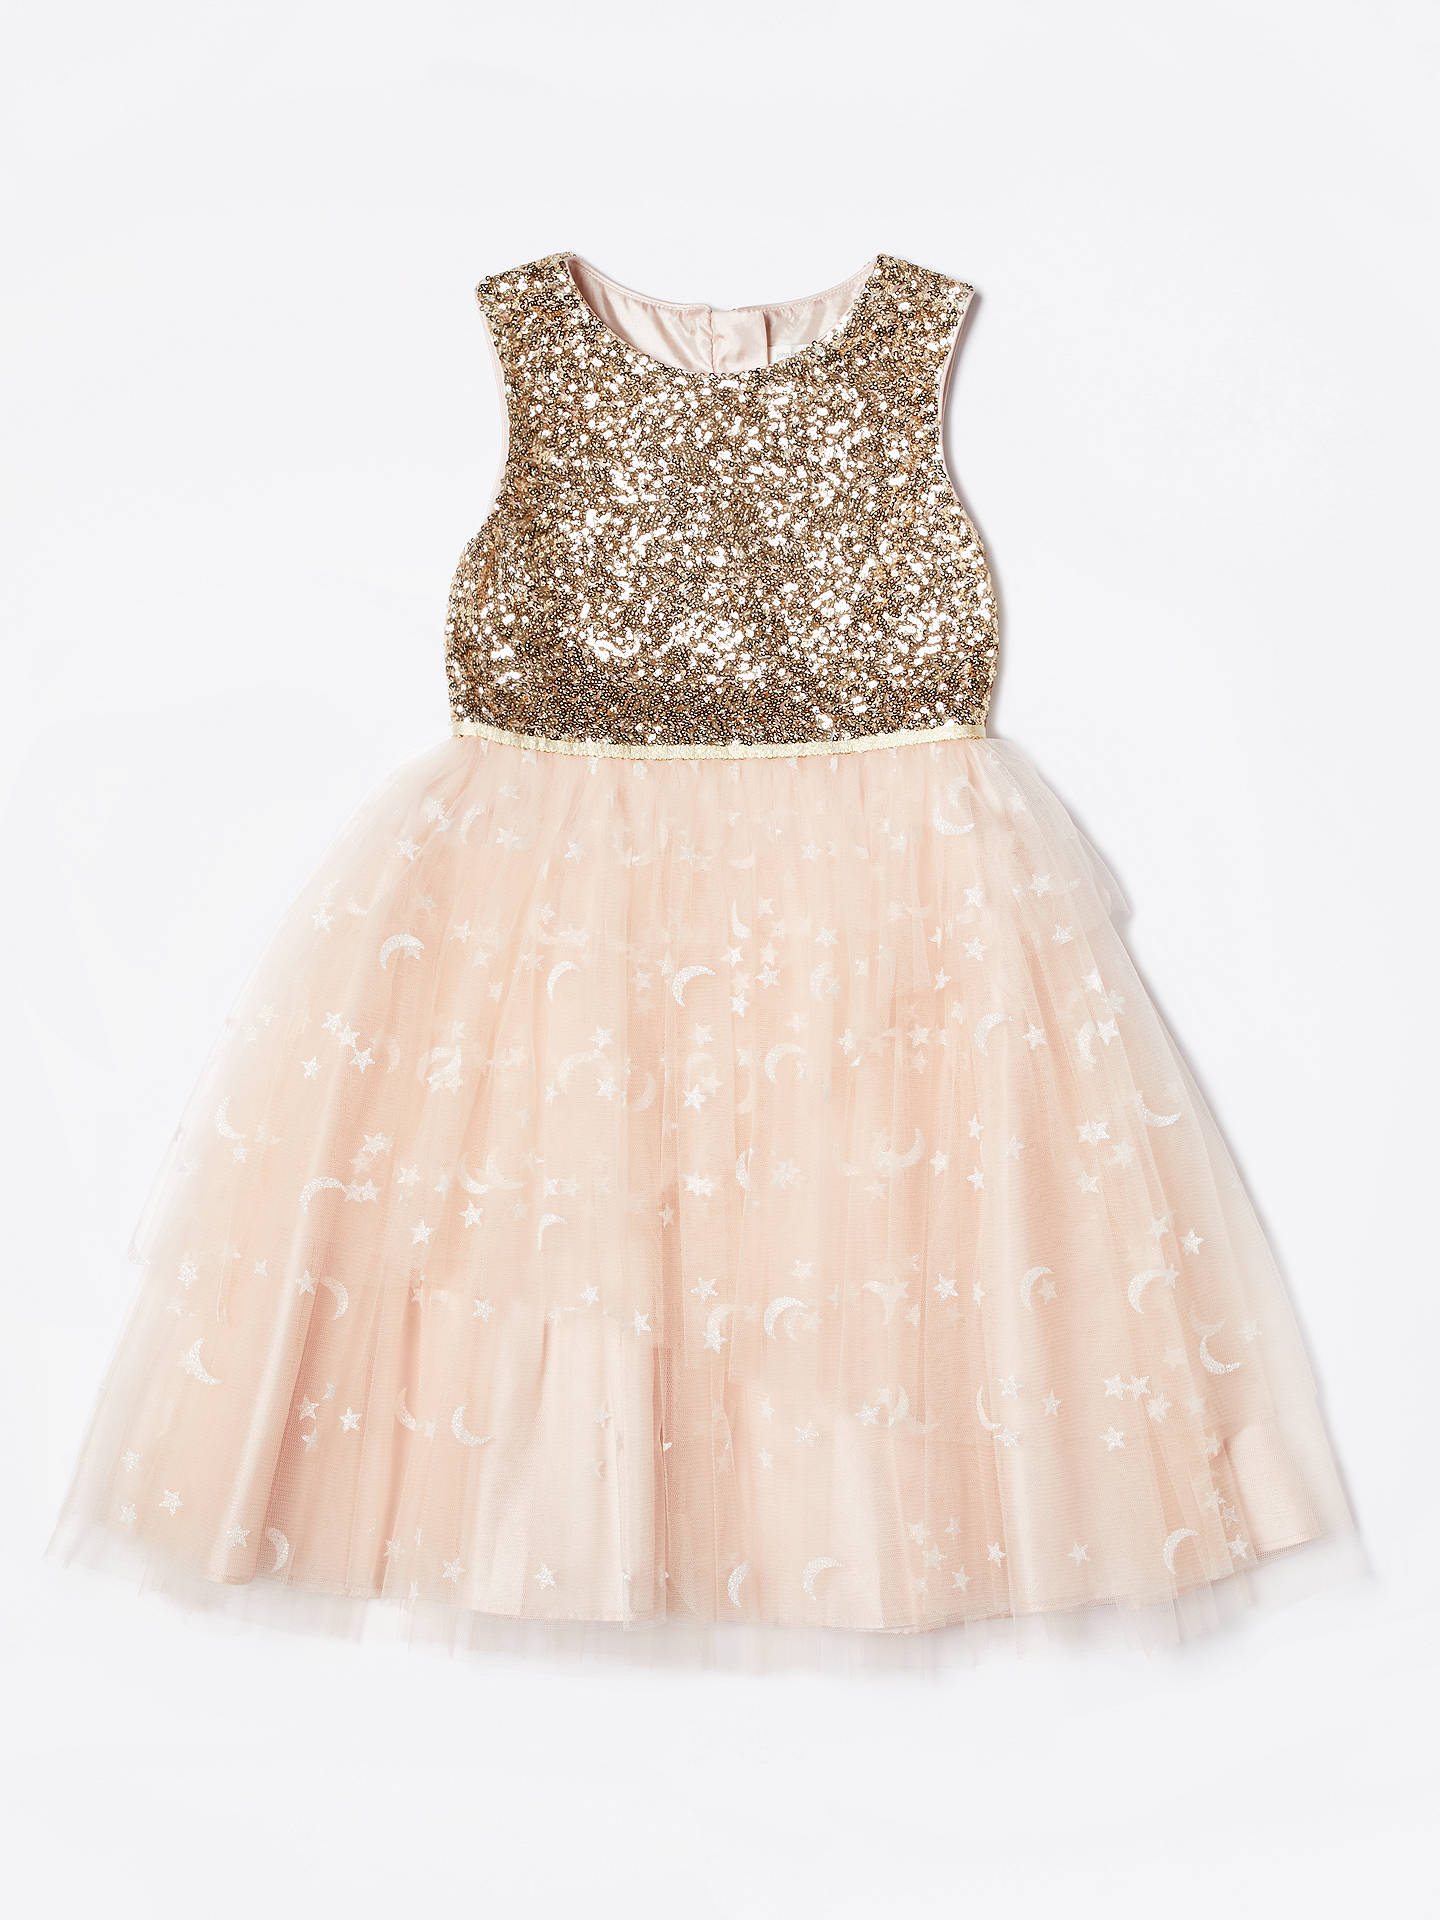 8252c9523c33c John Lewis & Partners Girls' Sequin Mesh Dress, Neutral/Gold at John ...